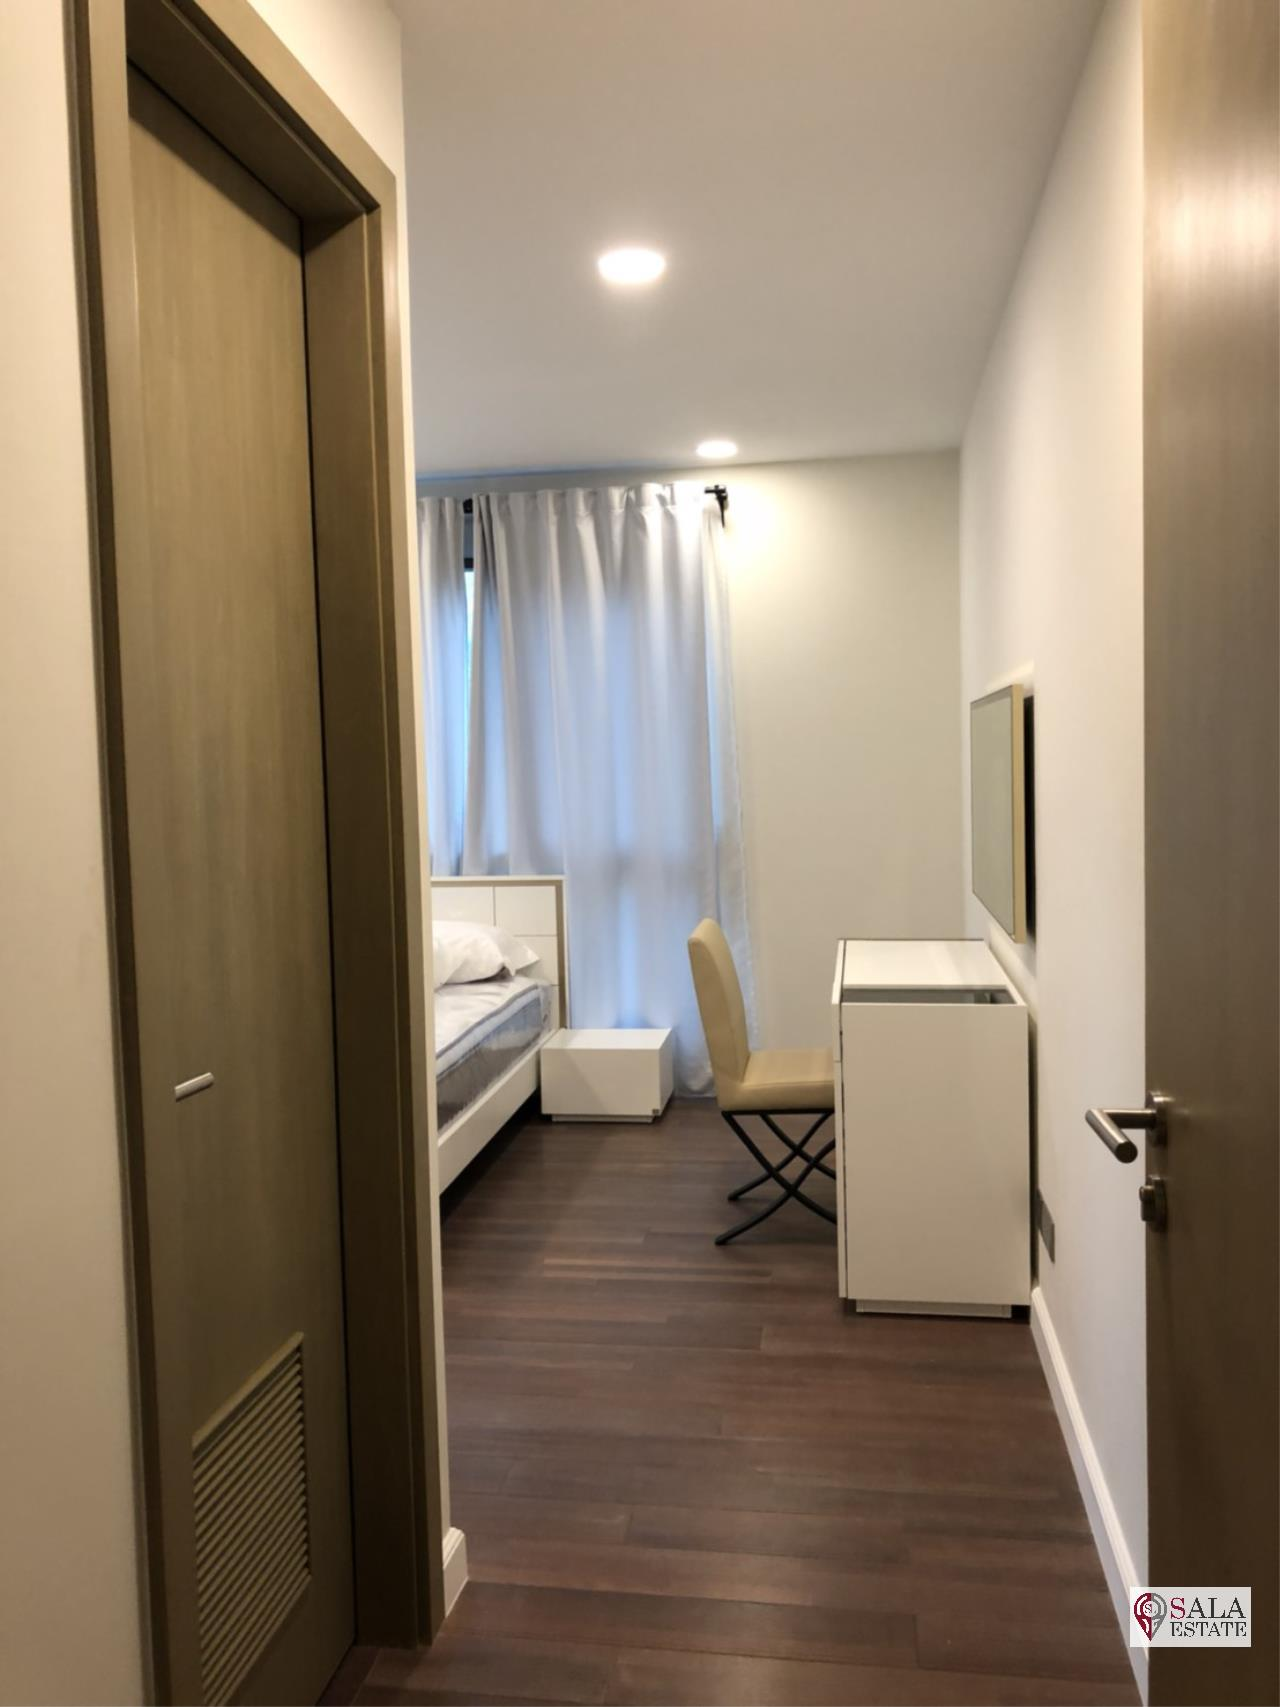 SALA ESTATE Agency's SYNC NATURE SIAM – BTS NATIONAL STADIUM, 0 Bedroom 0 Bathroom, Fully furnished, City View 12